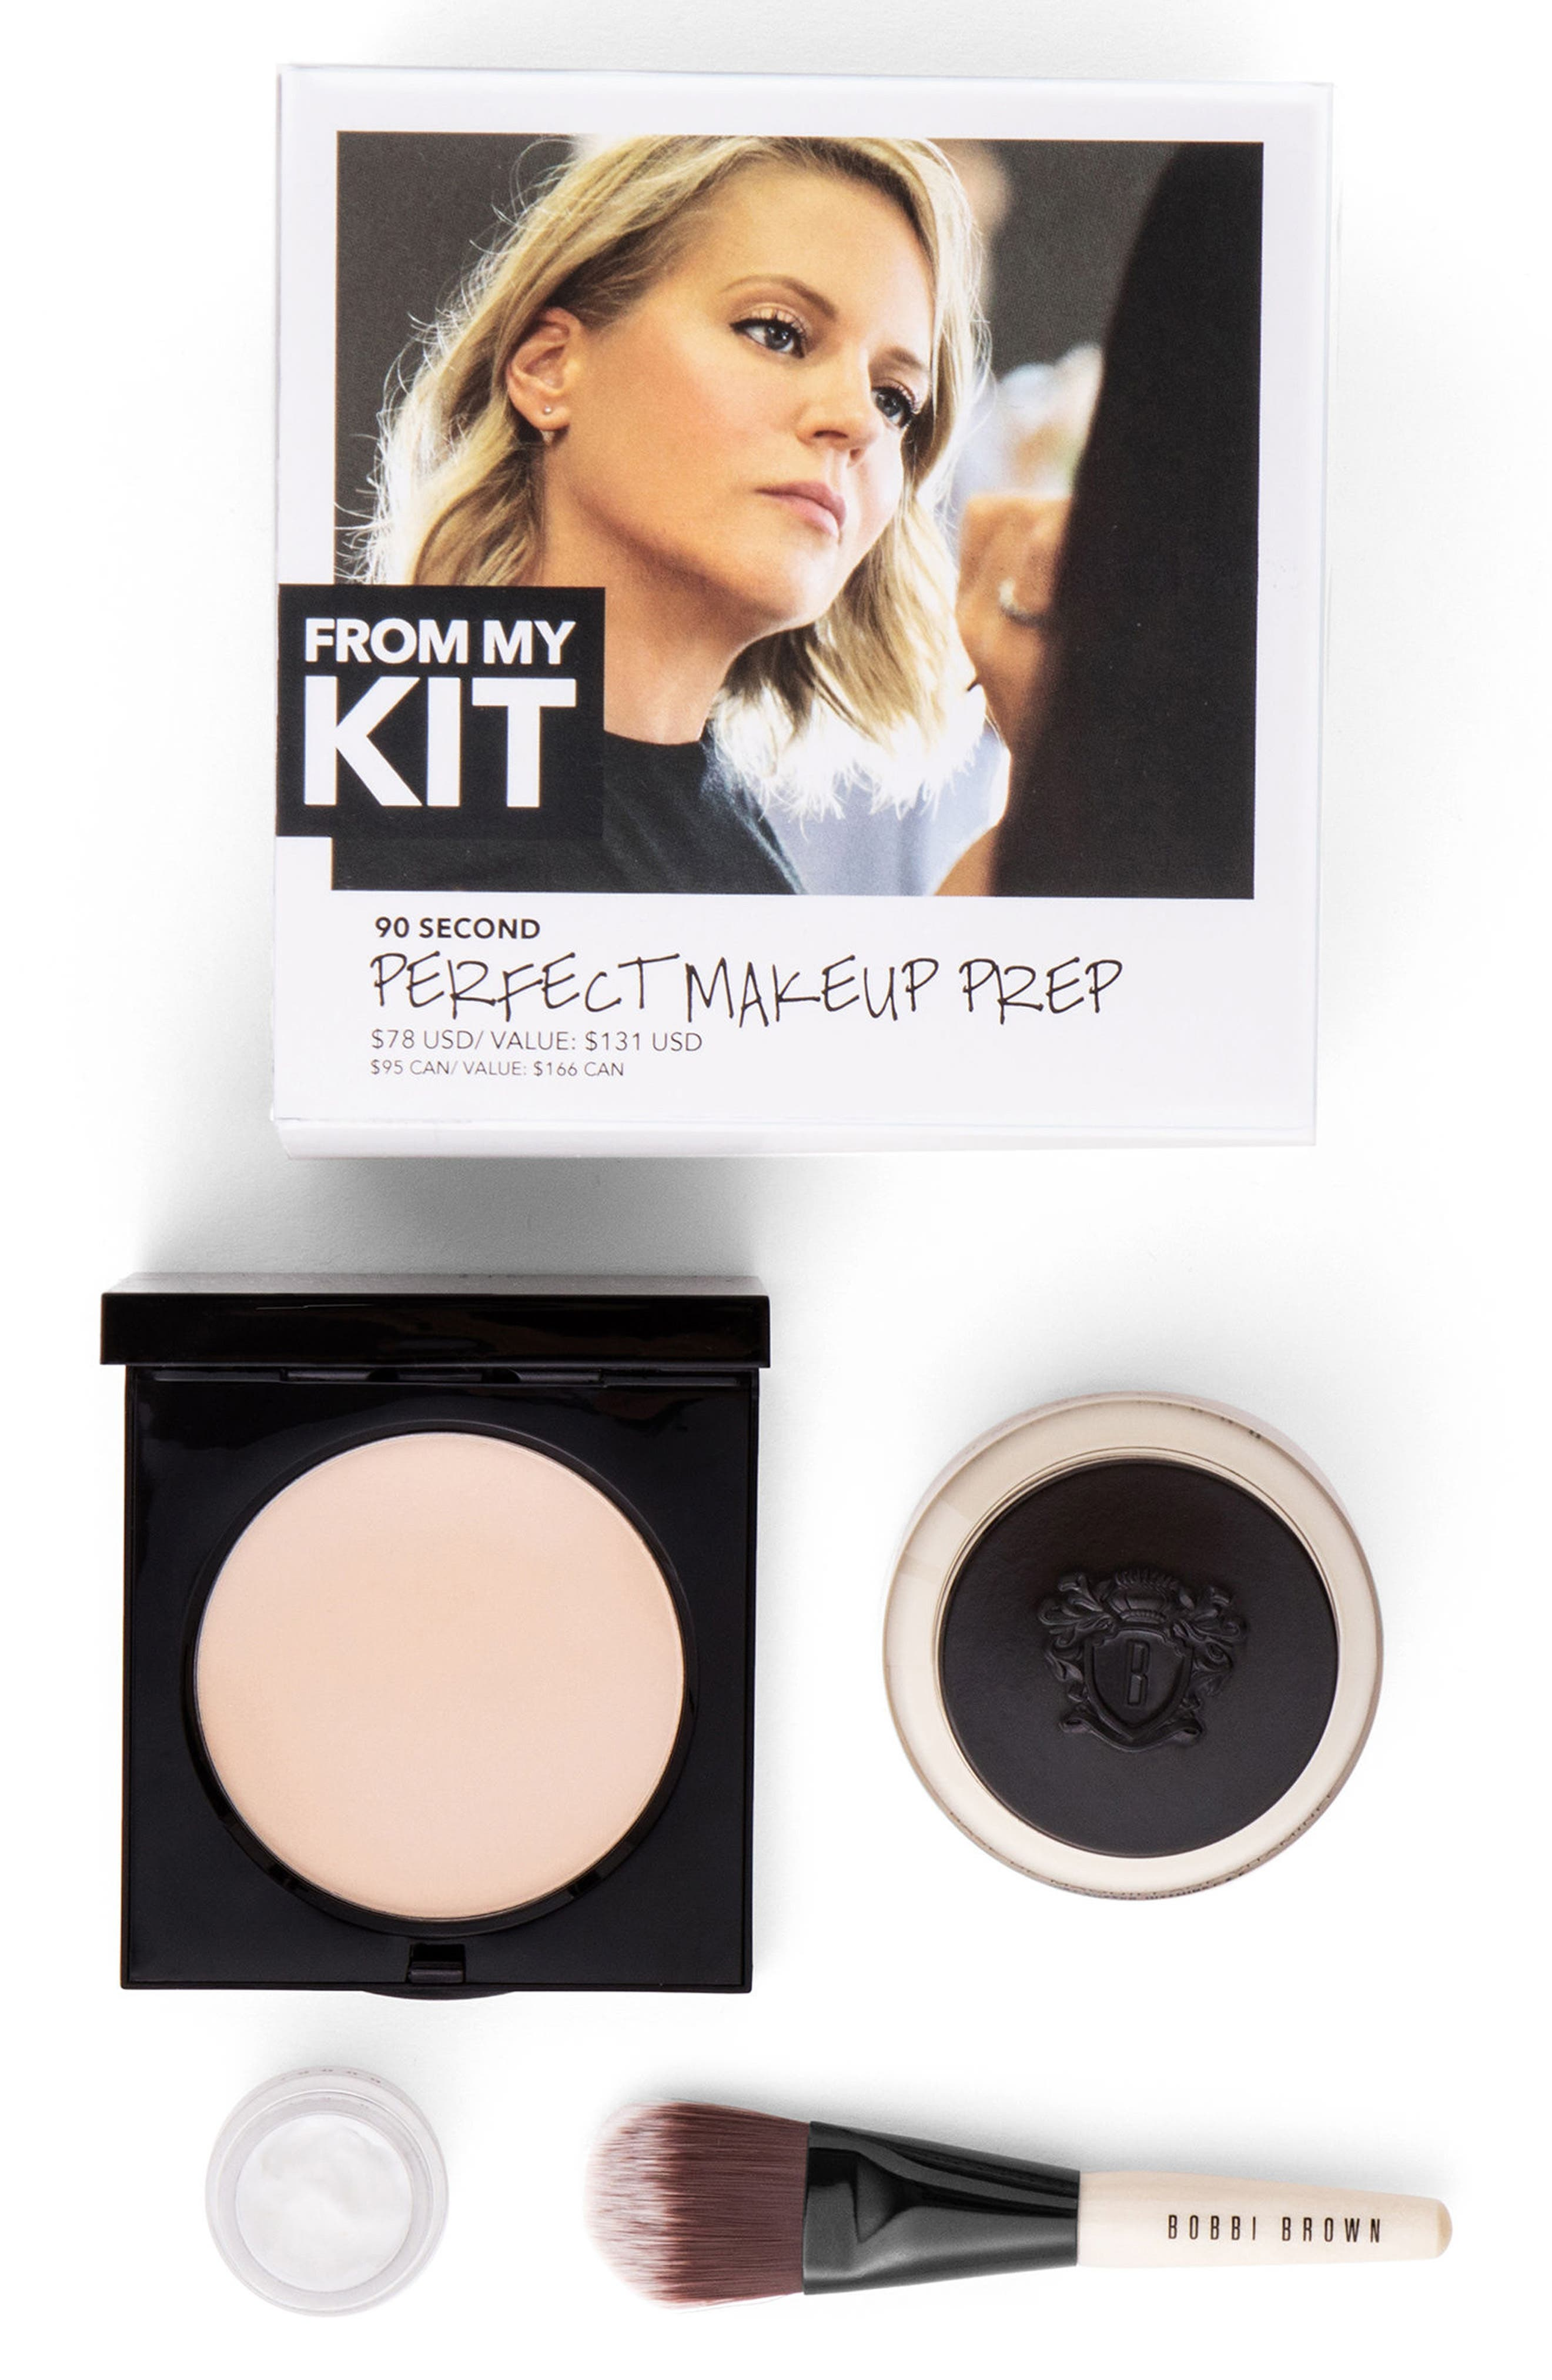 Bobbi Brown 90 Second Perfect Makeup Prep Collection ($131 Value)